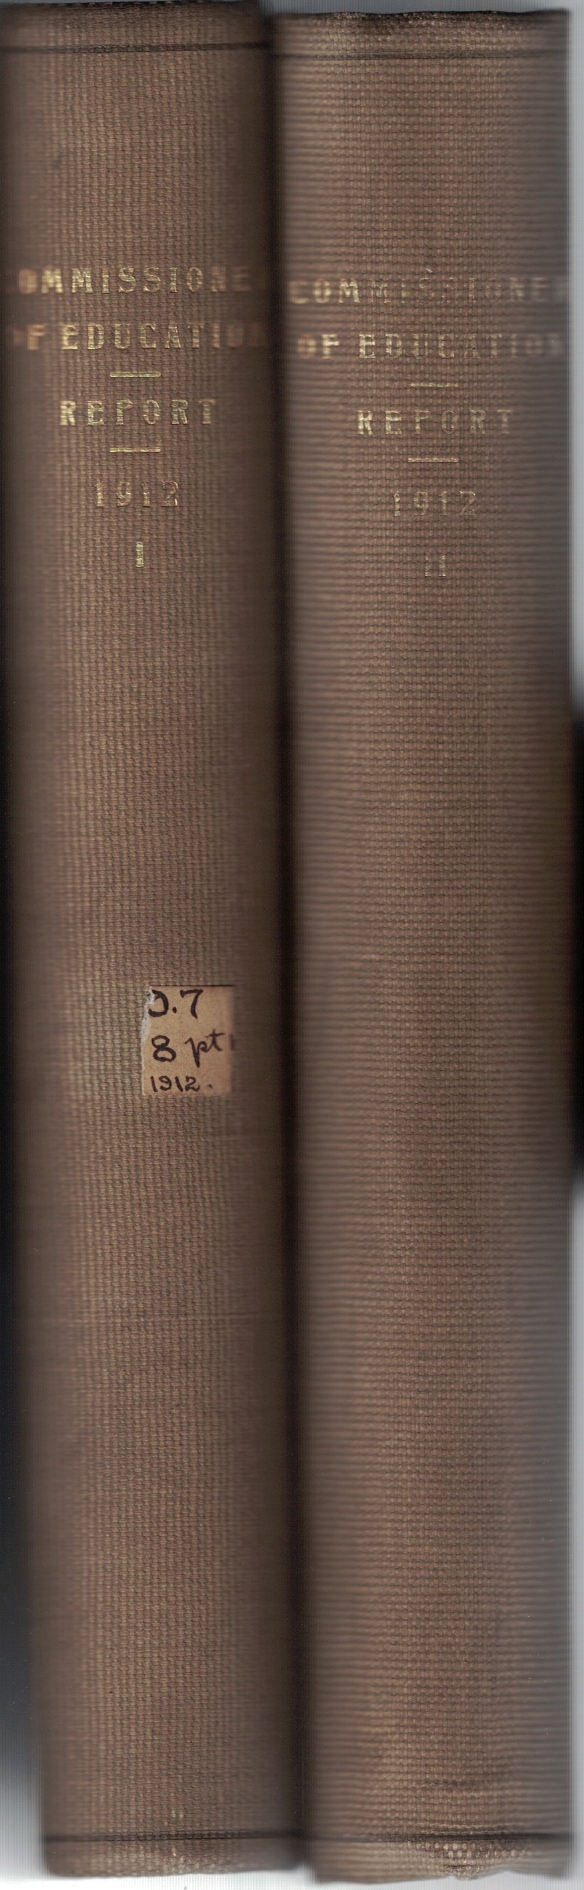 Image for Report of the Commissioner of Education for the Year Ended June 30, 1912 (2 Volume Set)